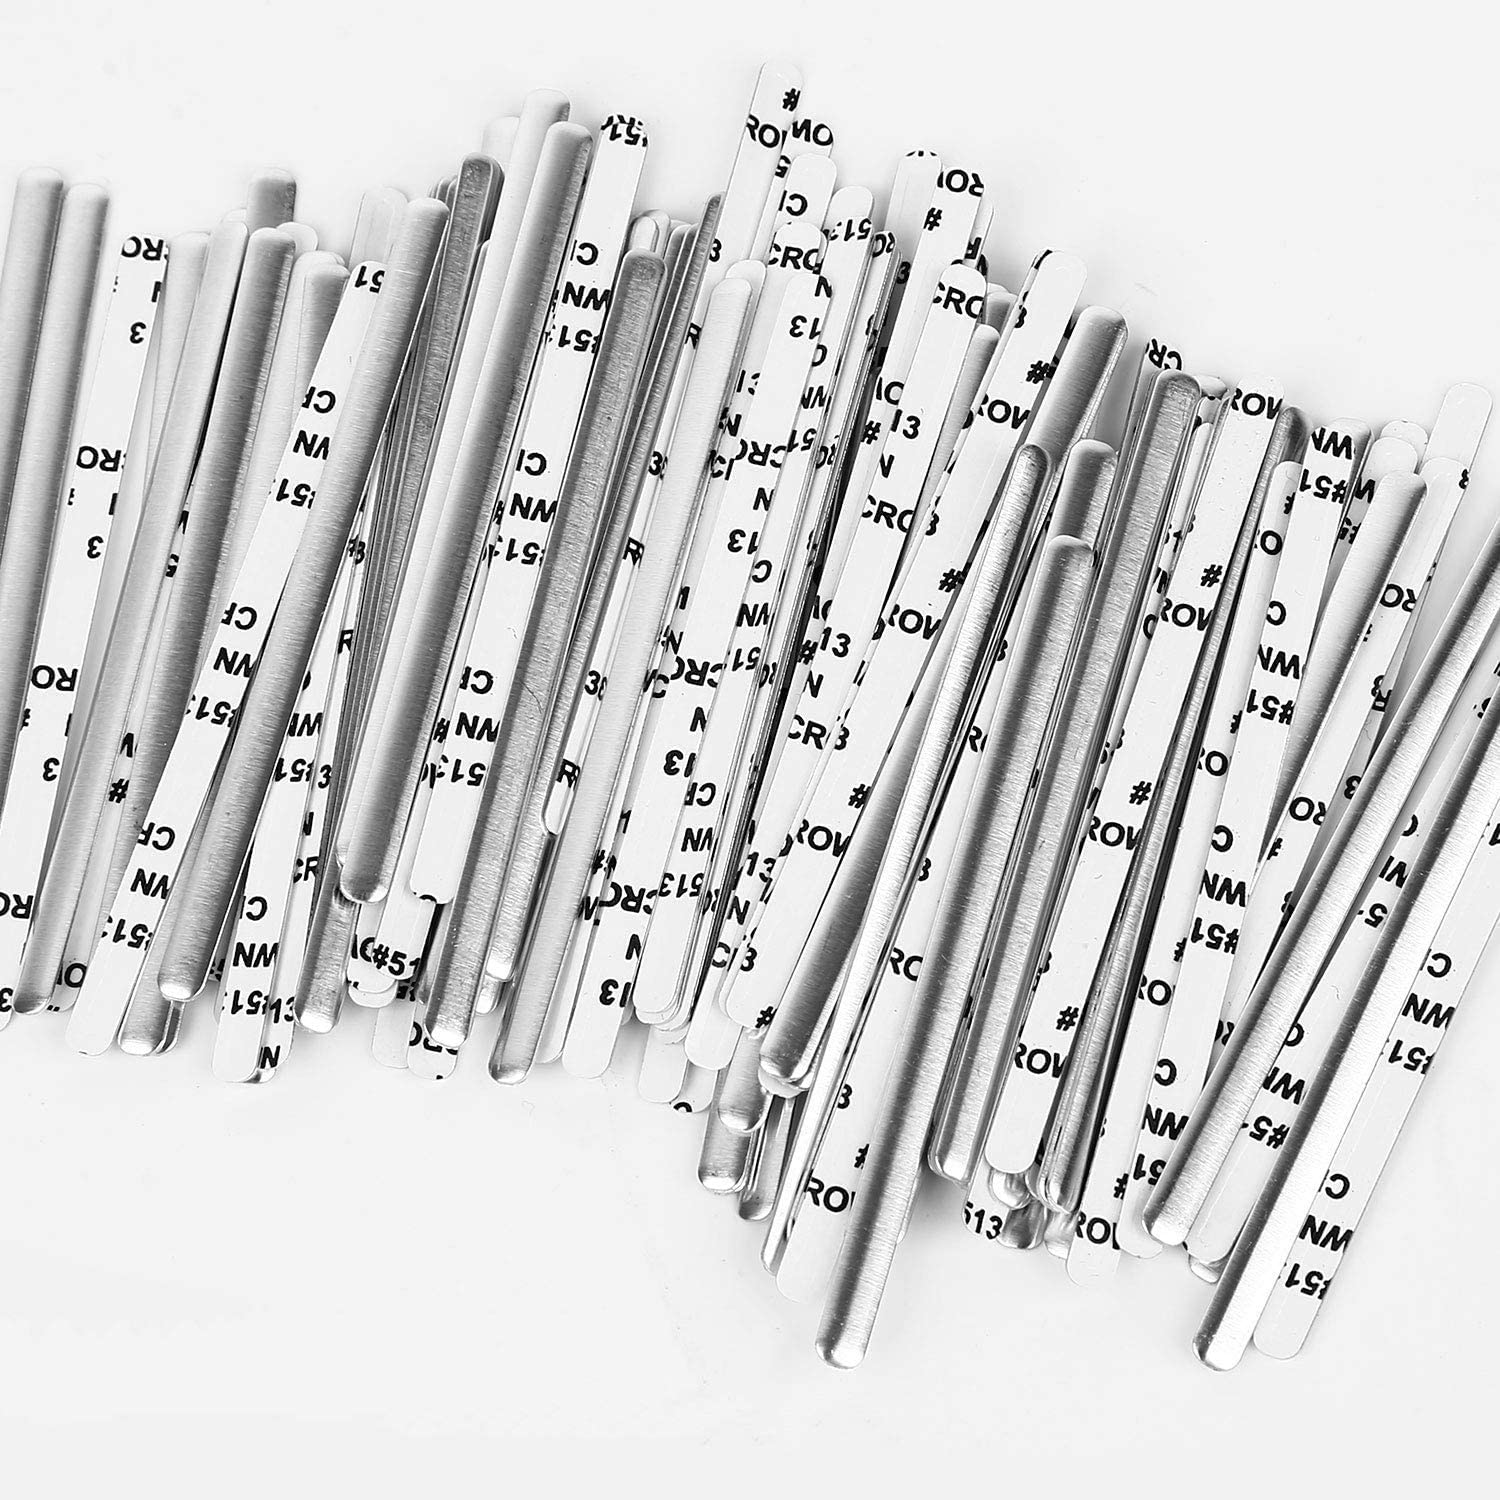 100 Aluminum Nose Bridge Strips for Face Cover Adjustable Nose Clips Wire for DIY,Metal Nose Strip Accessories for Sewing Crafts